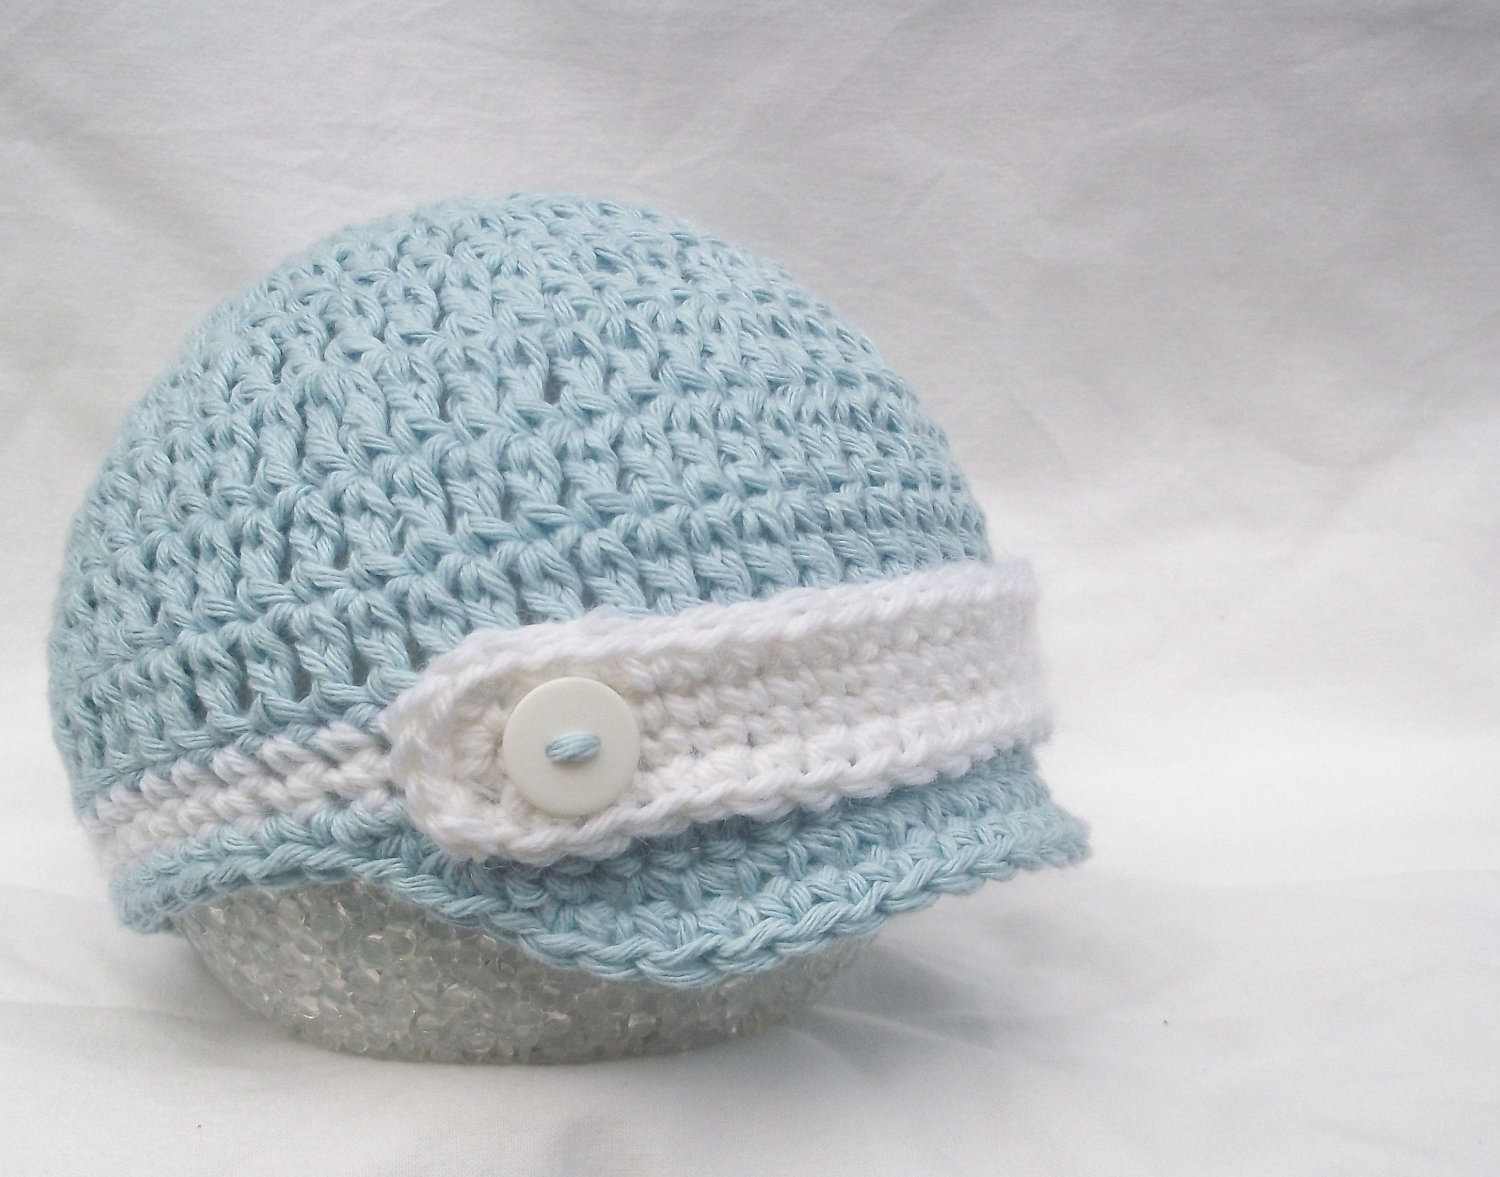 Crochet Stitches Baby Hats : Baby hat - Crochet baby hat - Newborn baby hat- Crochet baby boy hat ...